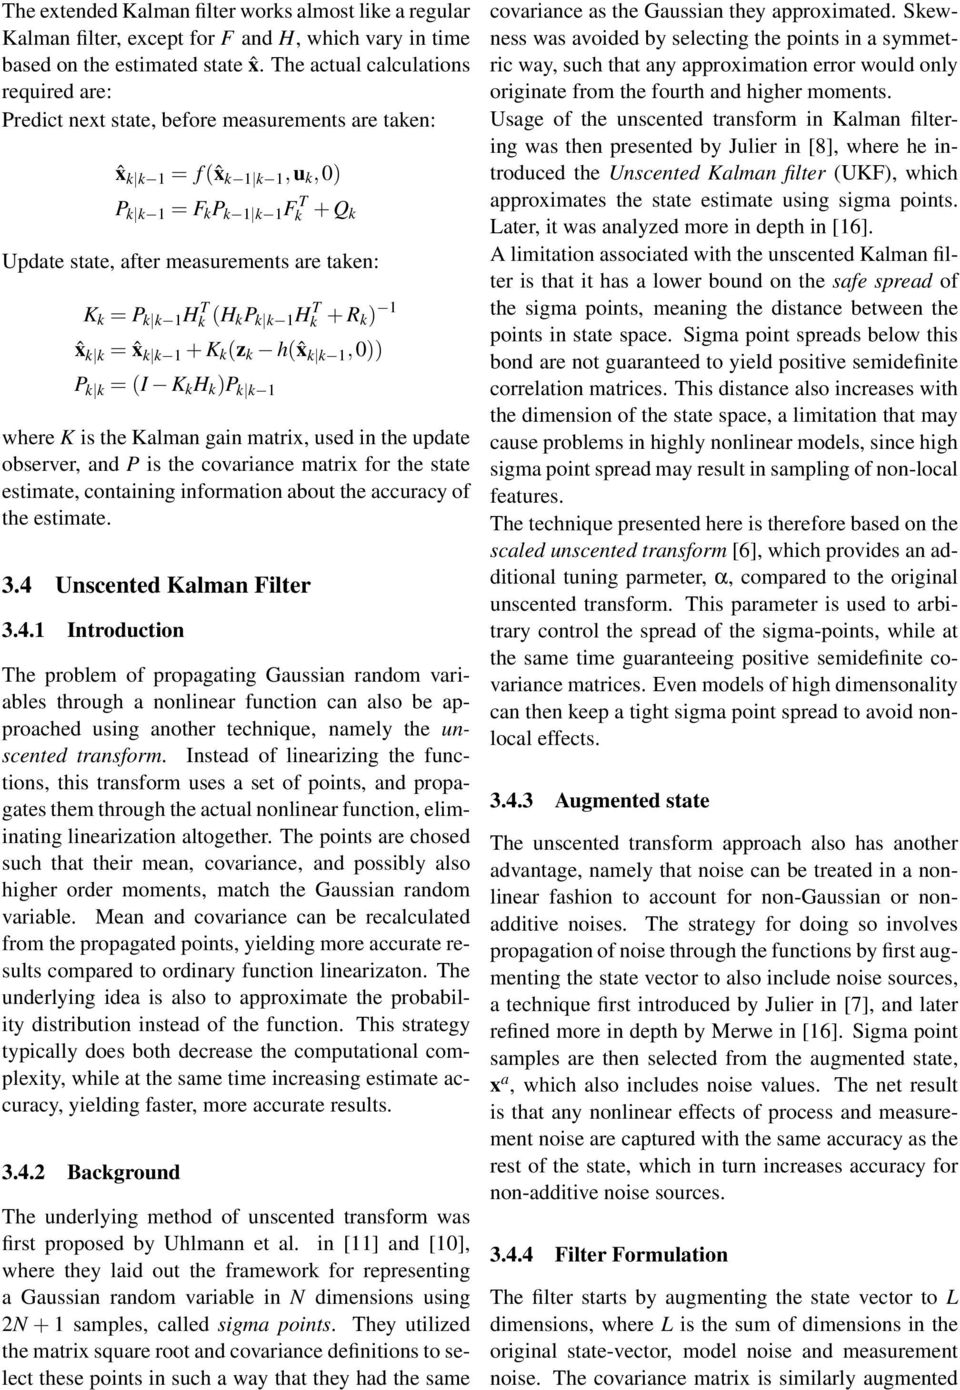 ) 1 ˆ = ˆ 1 + K (z h(ˆ 1,0)) P = (I K H )P 1 where K is the Kalman gain matri, used in the update observer, and P is the covariance matri for the state estimate, containing information about the